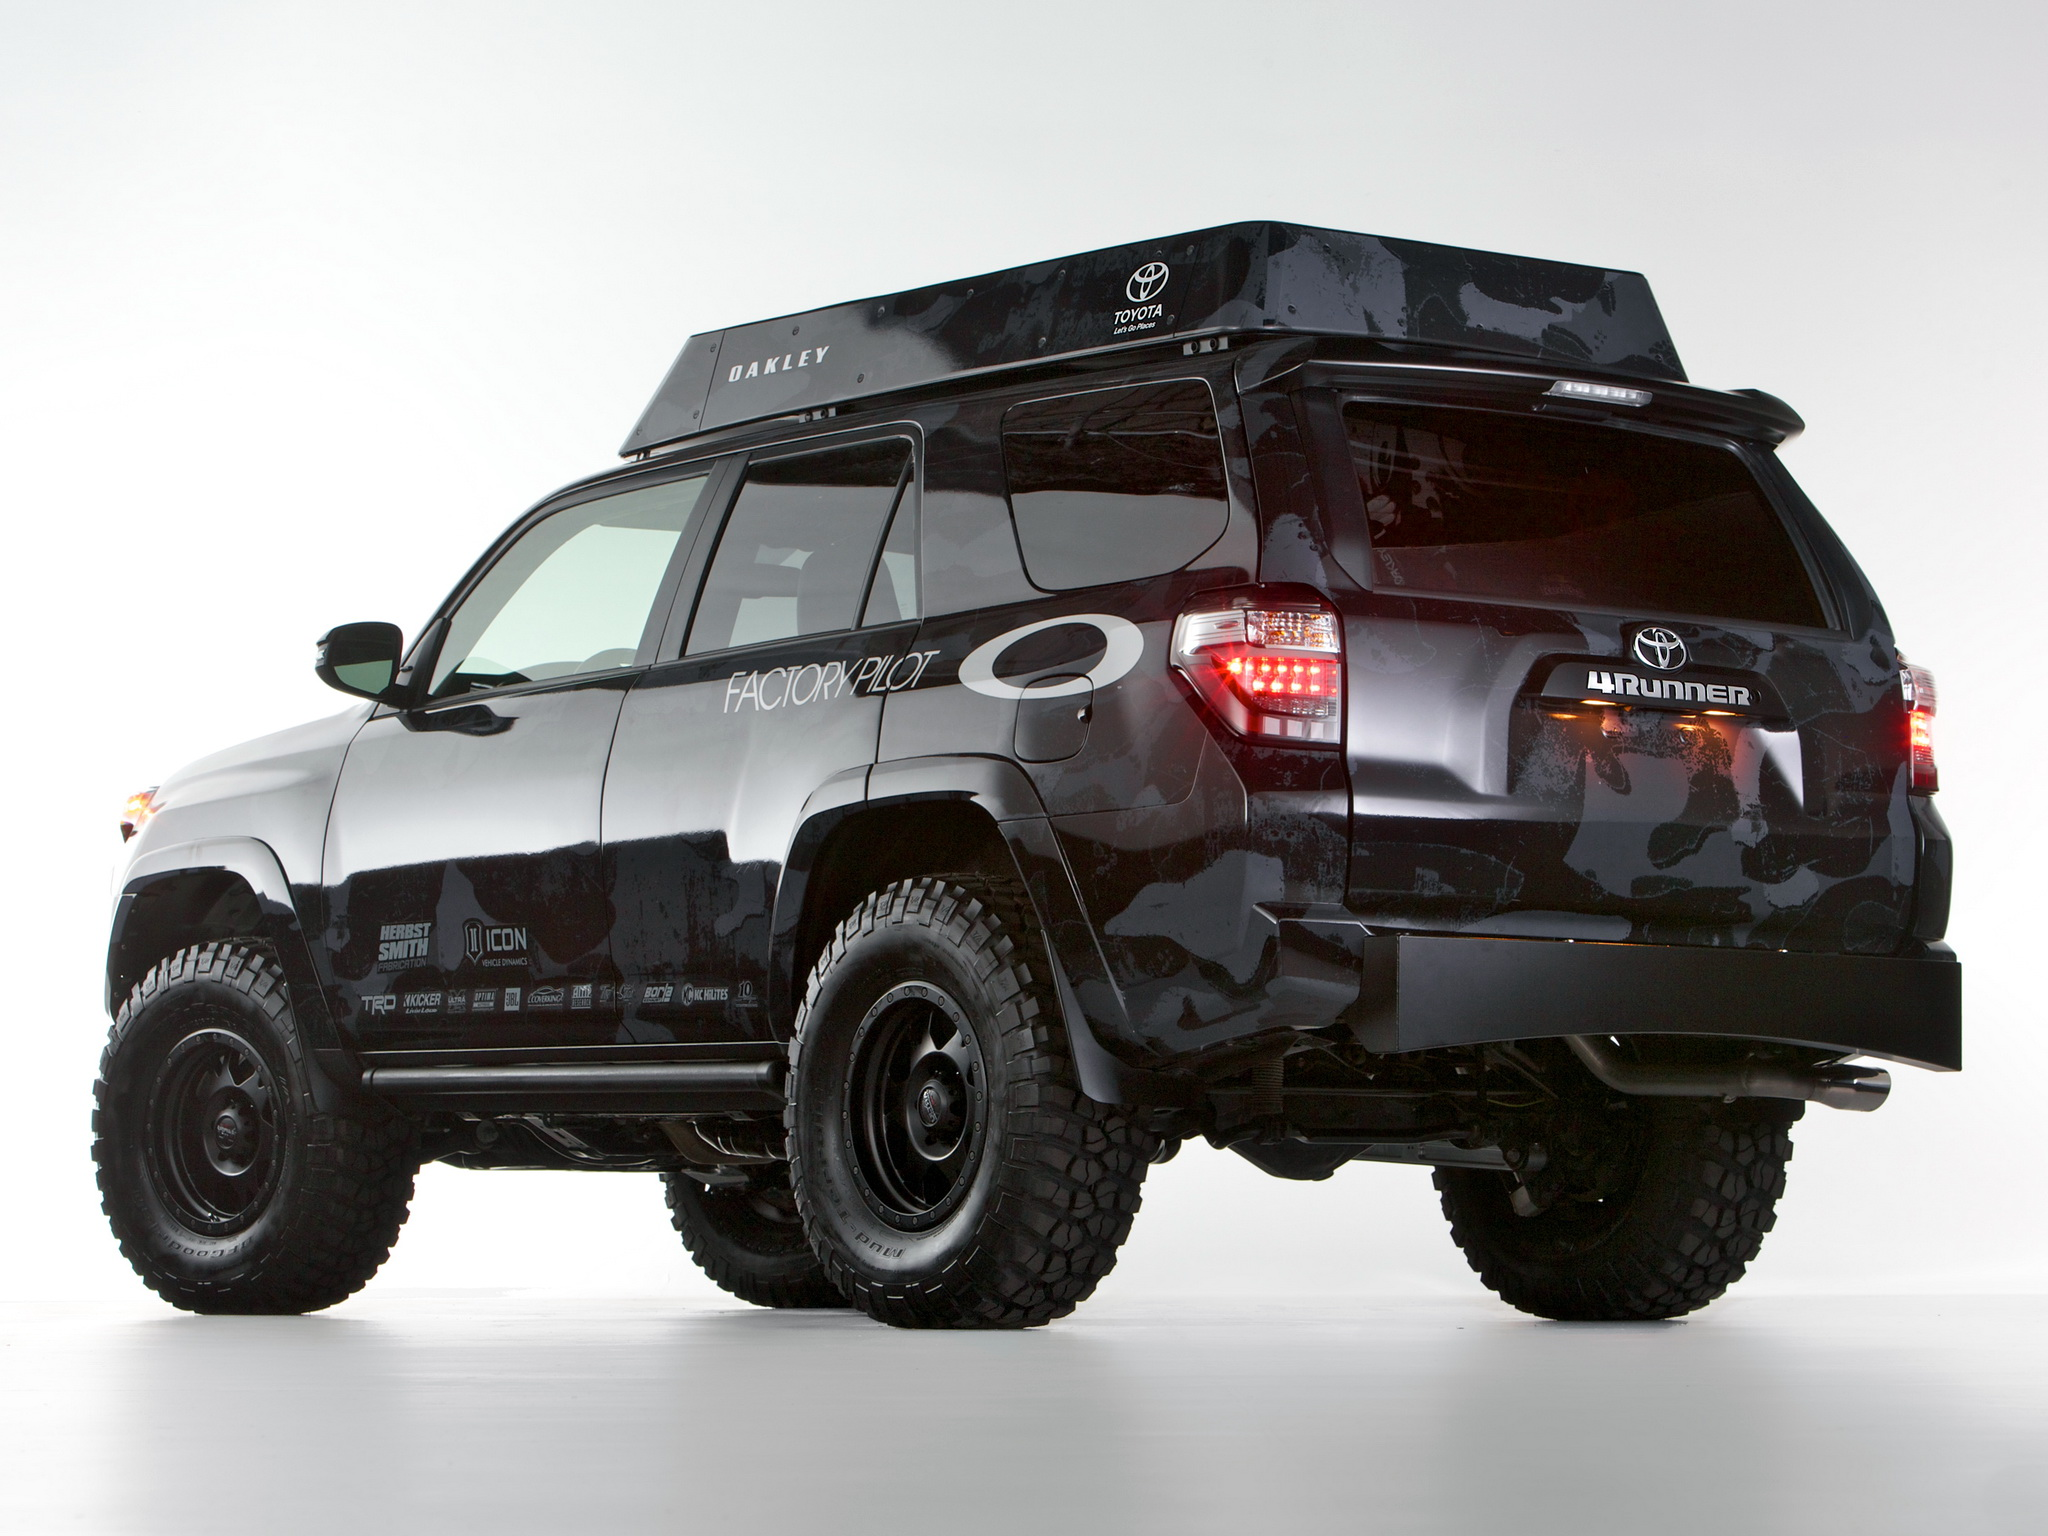 Photo Du Toyota 4runner Edition Trail 2011 14058 also 5576 1996 Toyota 4runner 6 likewise Wallpaper 0f also Cat 646743 together with 2013 Toyota 4Runner Ski suv 4x4 tuning offroad t. on toyota 4runner